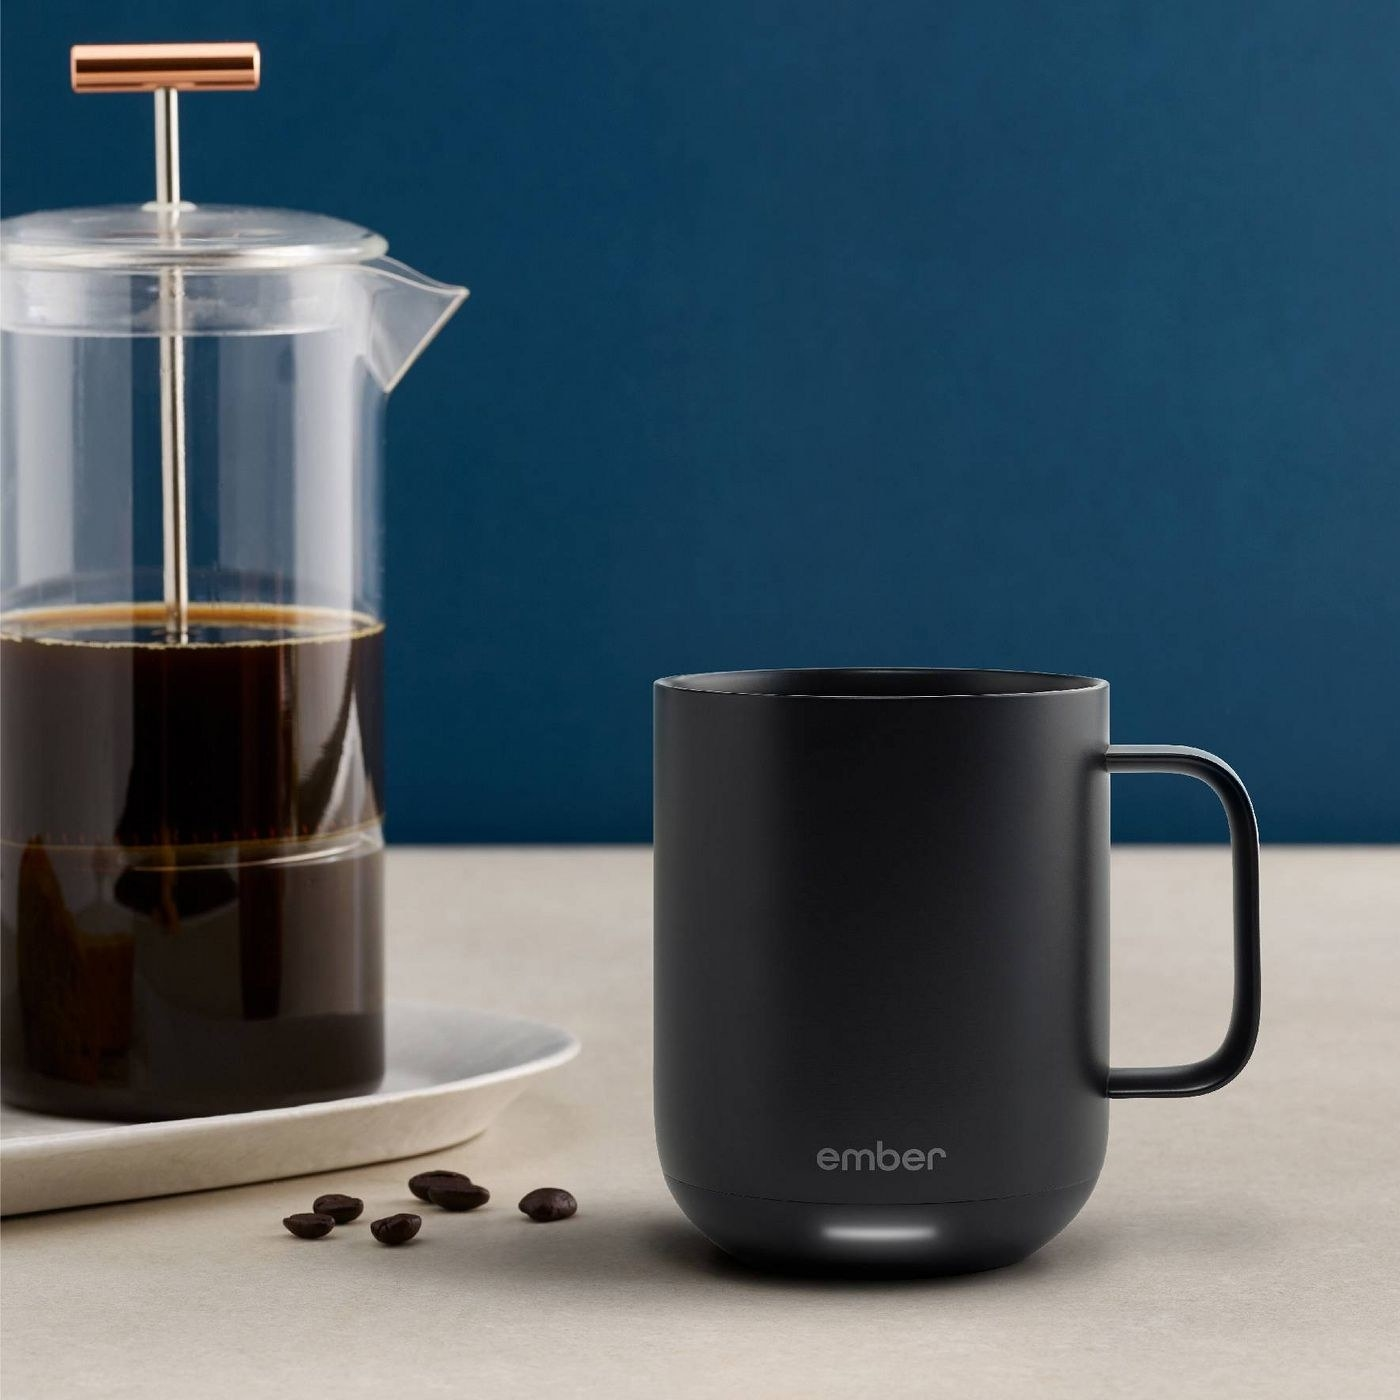 The temperature control mug in black with the LED light turned on